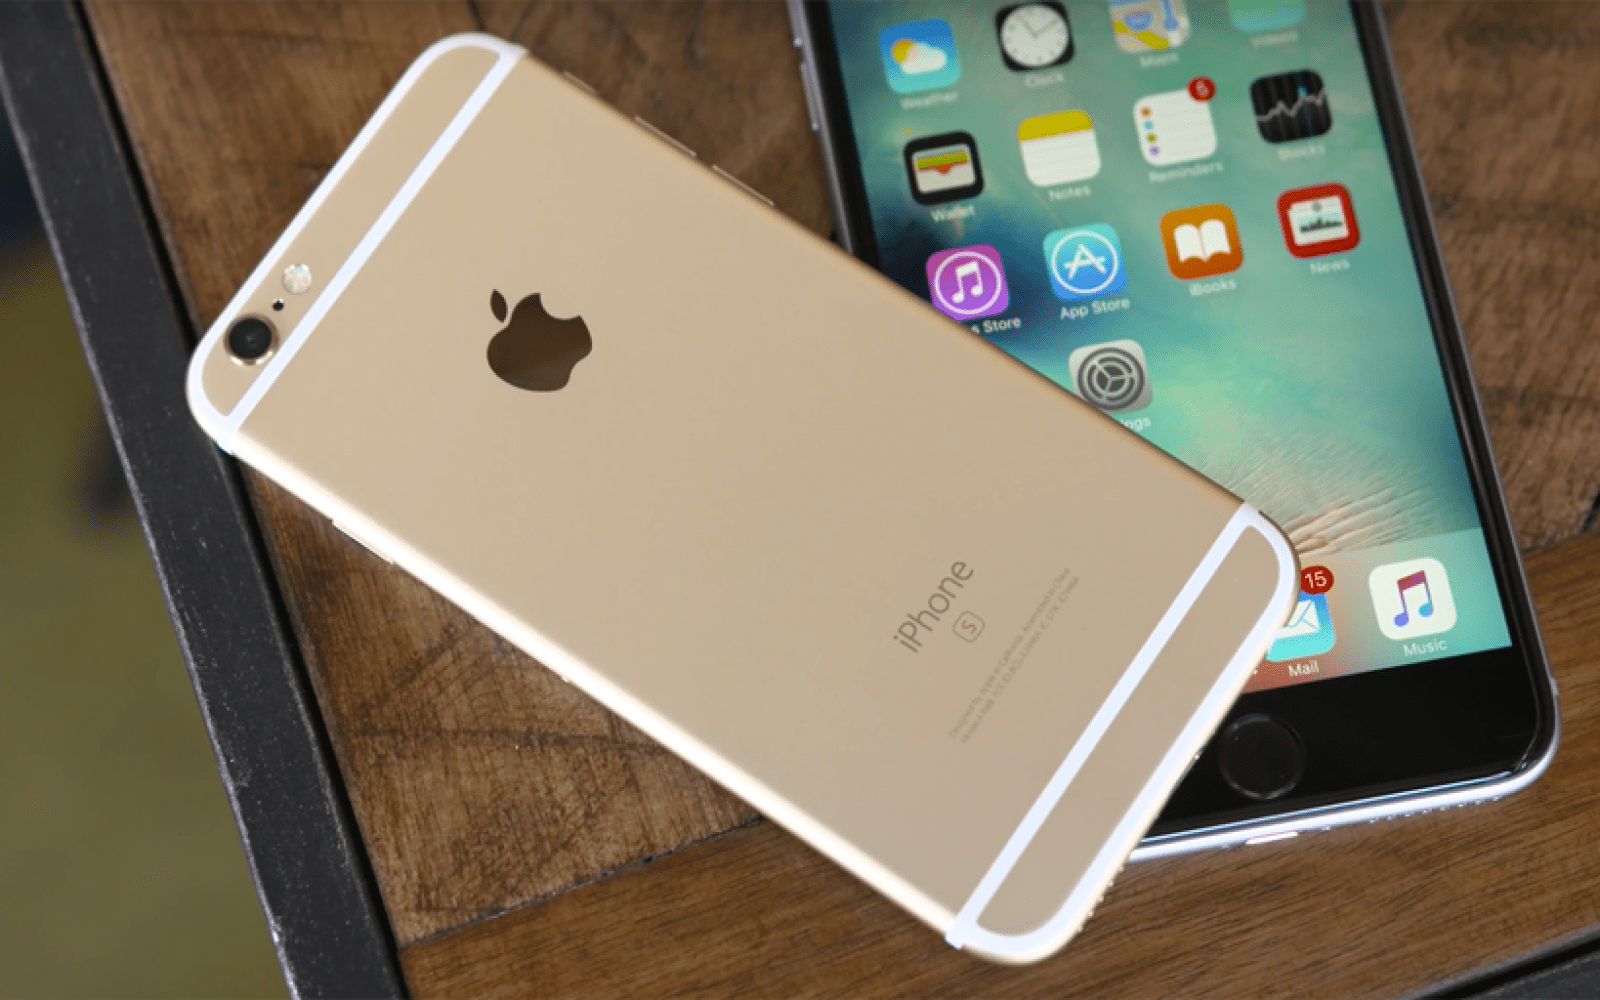 iPhone 6s/Plus goes on sale in 36 more countries today, with a further 6 tomorrow